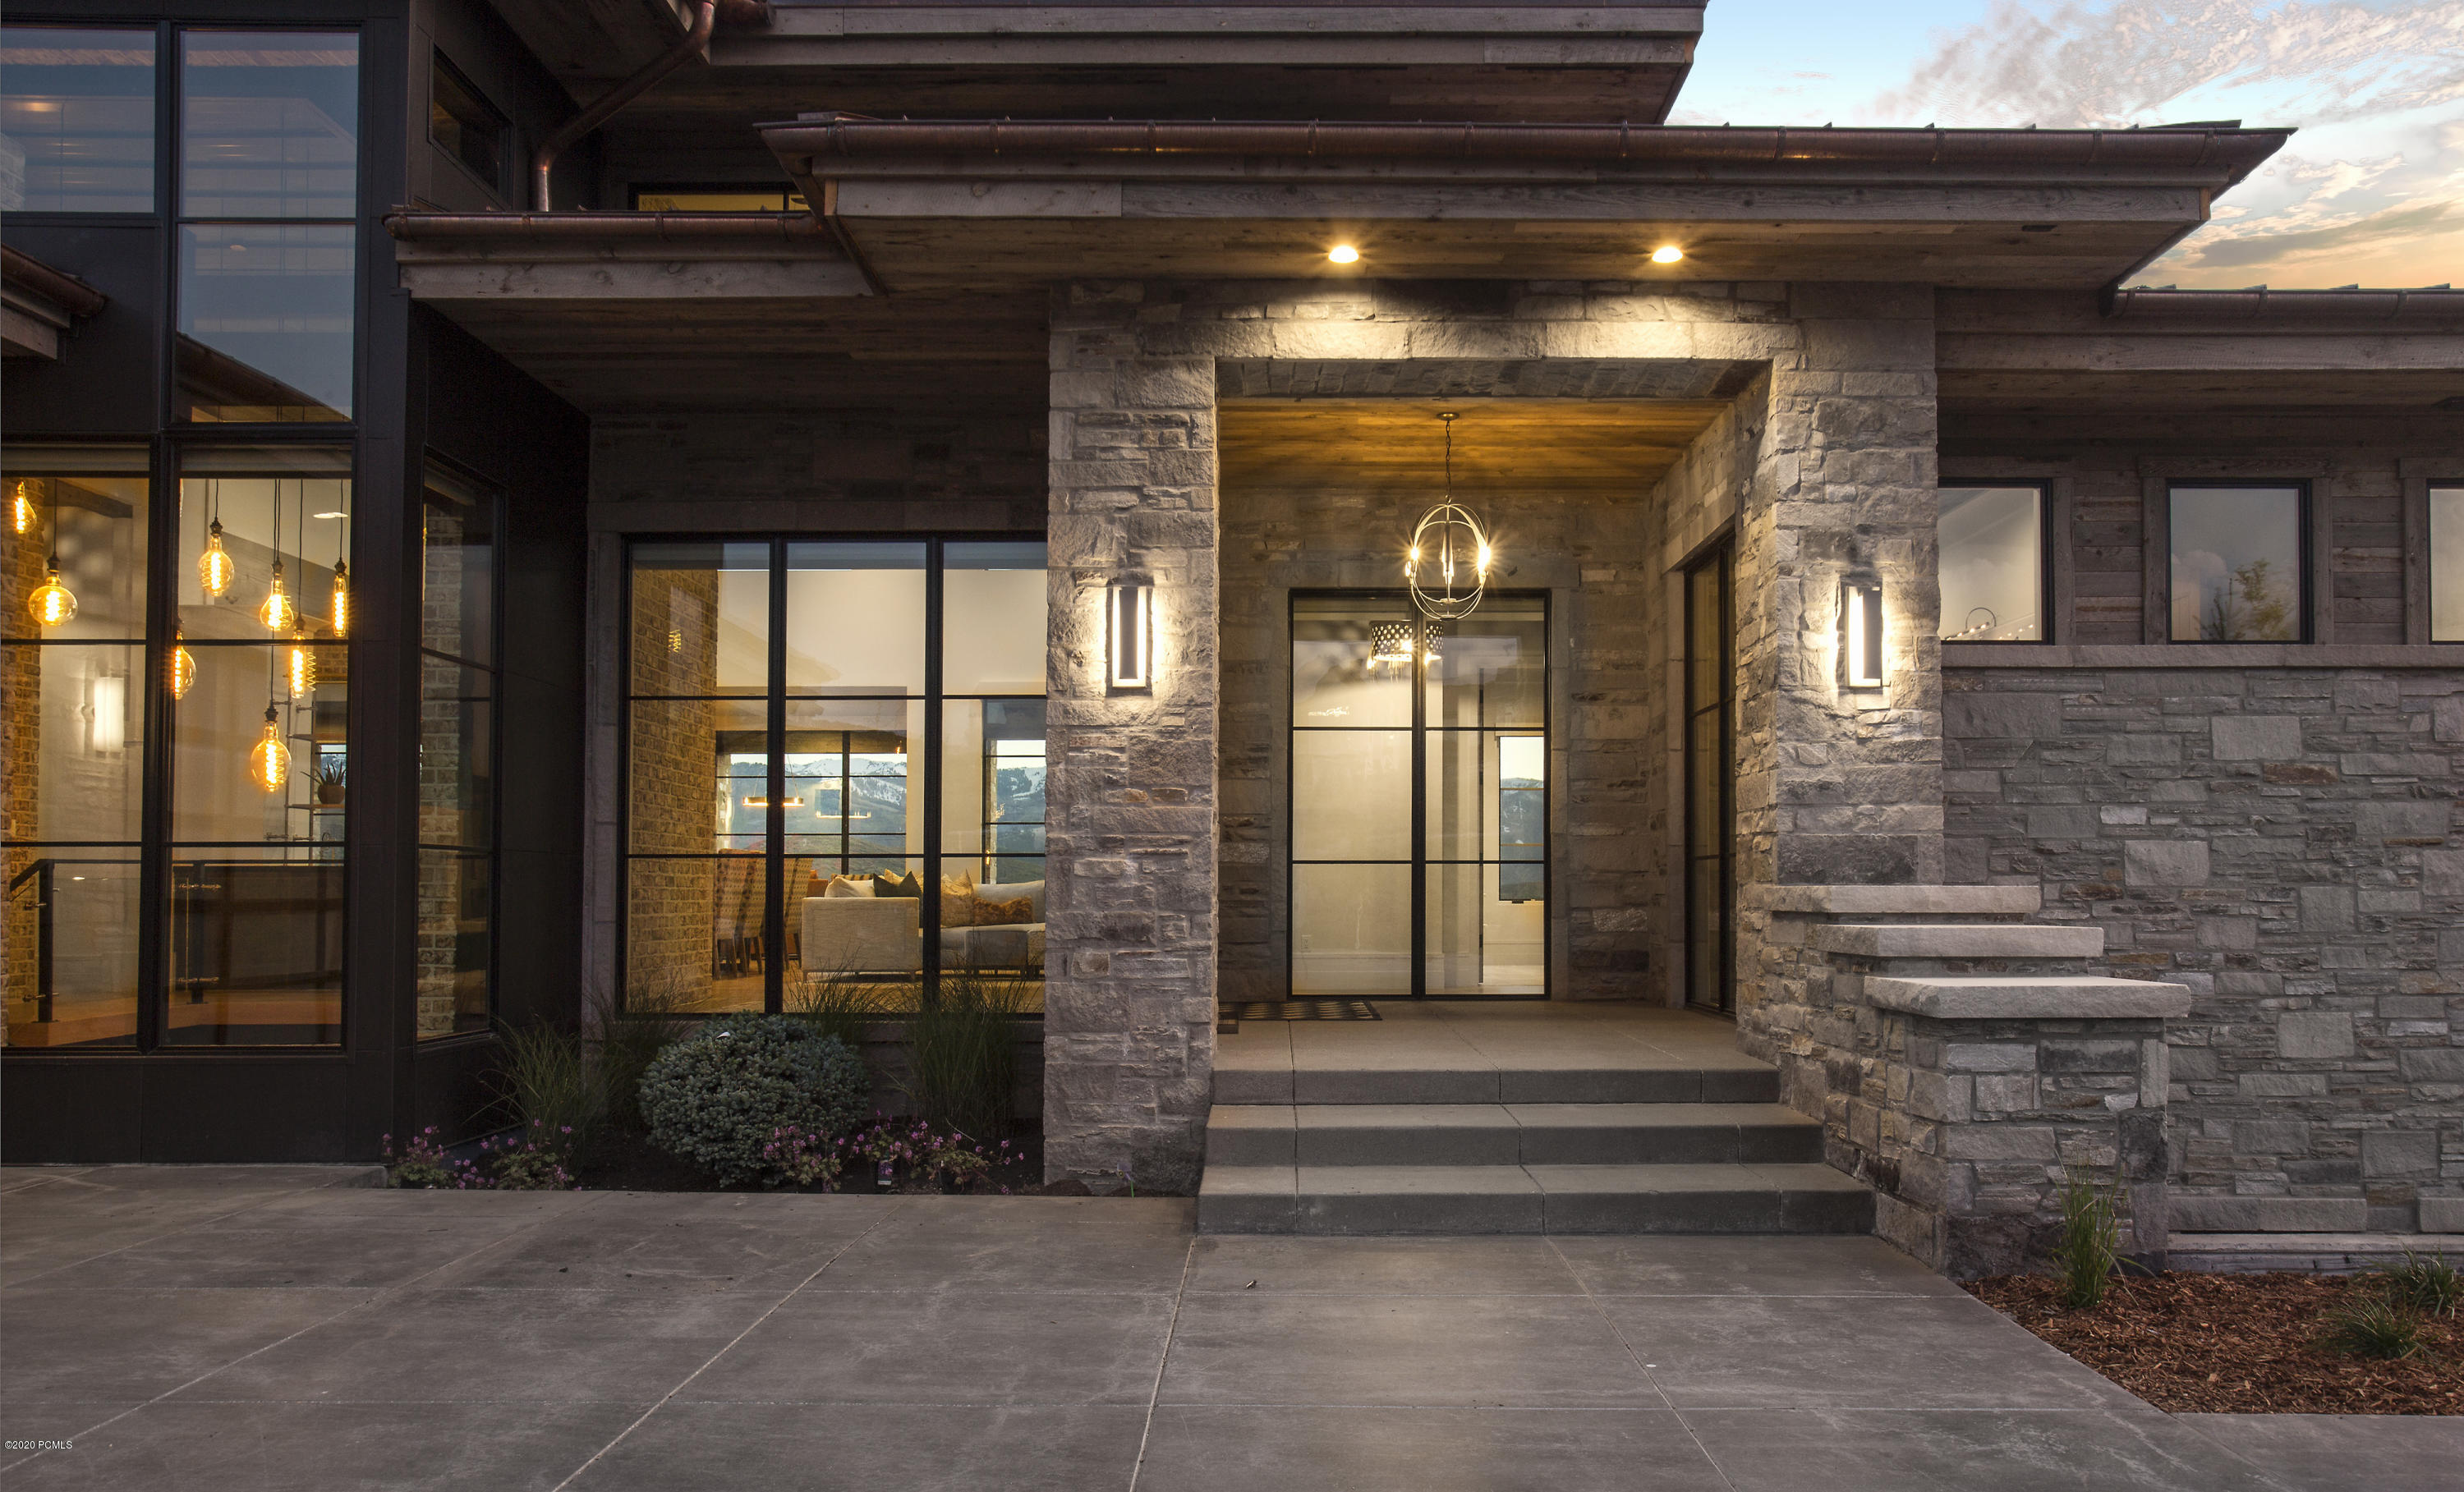 6691 Cody Trail, Park City, Utah 84098, 6 Bedrooms Bedrooms, ,6 BathroomsBathrooms,Single Family,For Sale,Cody,20190109112430415765000000